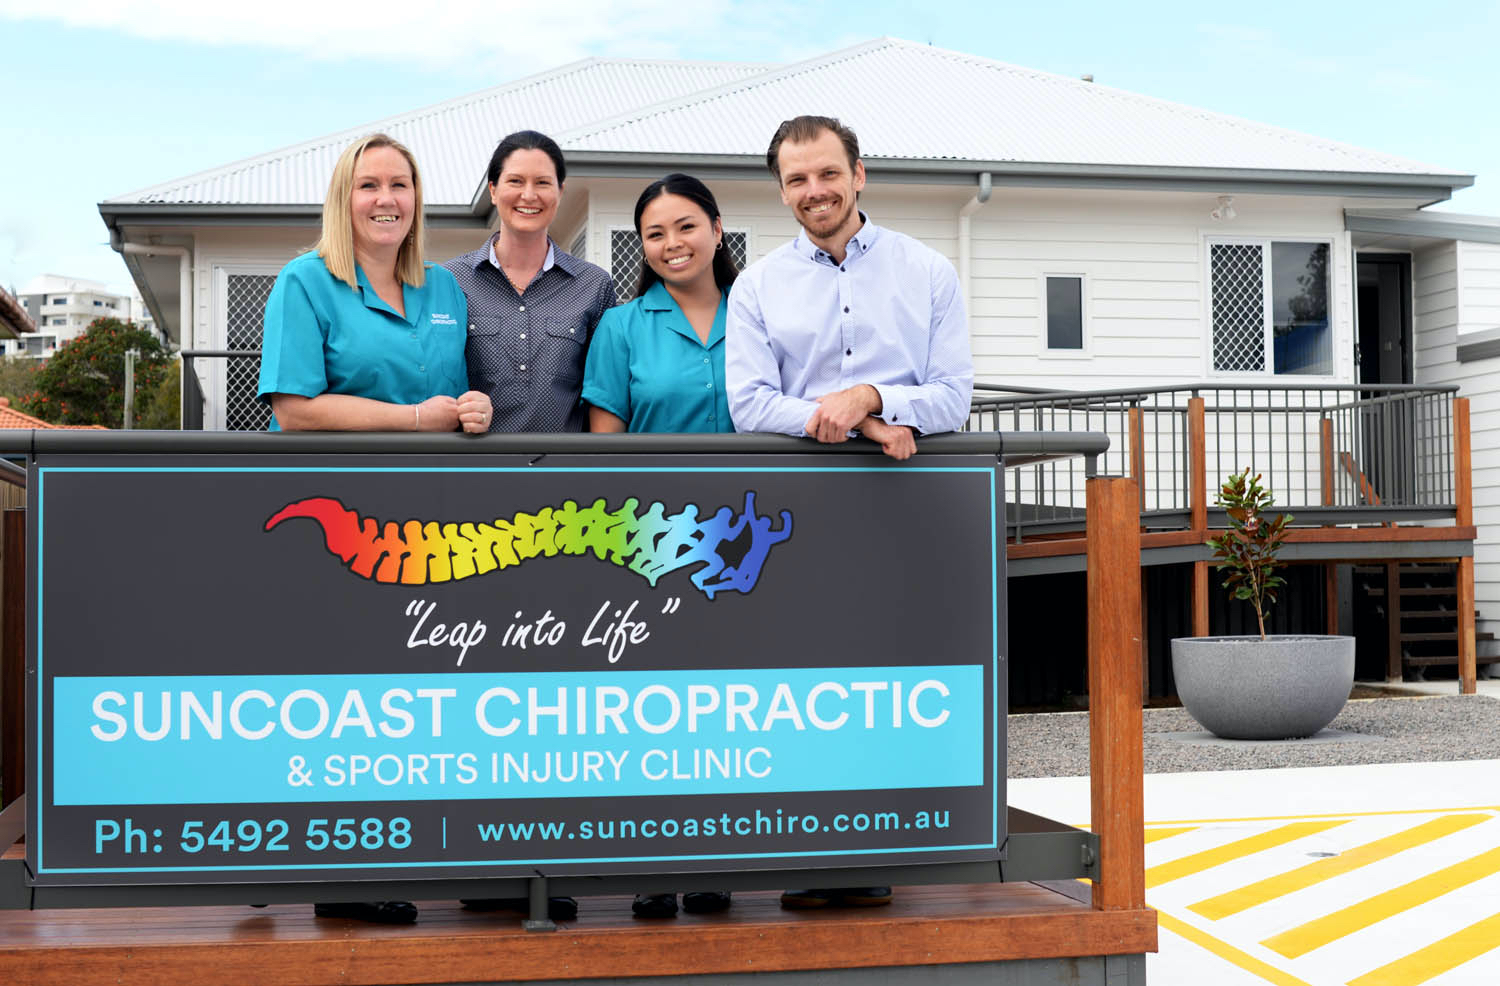 The Suncoast Chiropractic team.